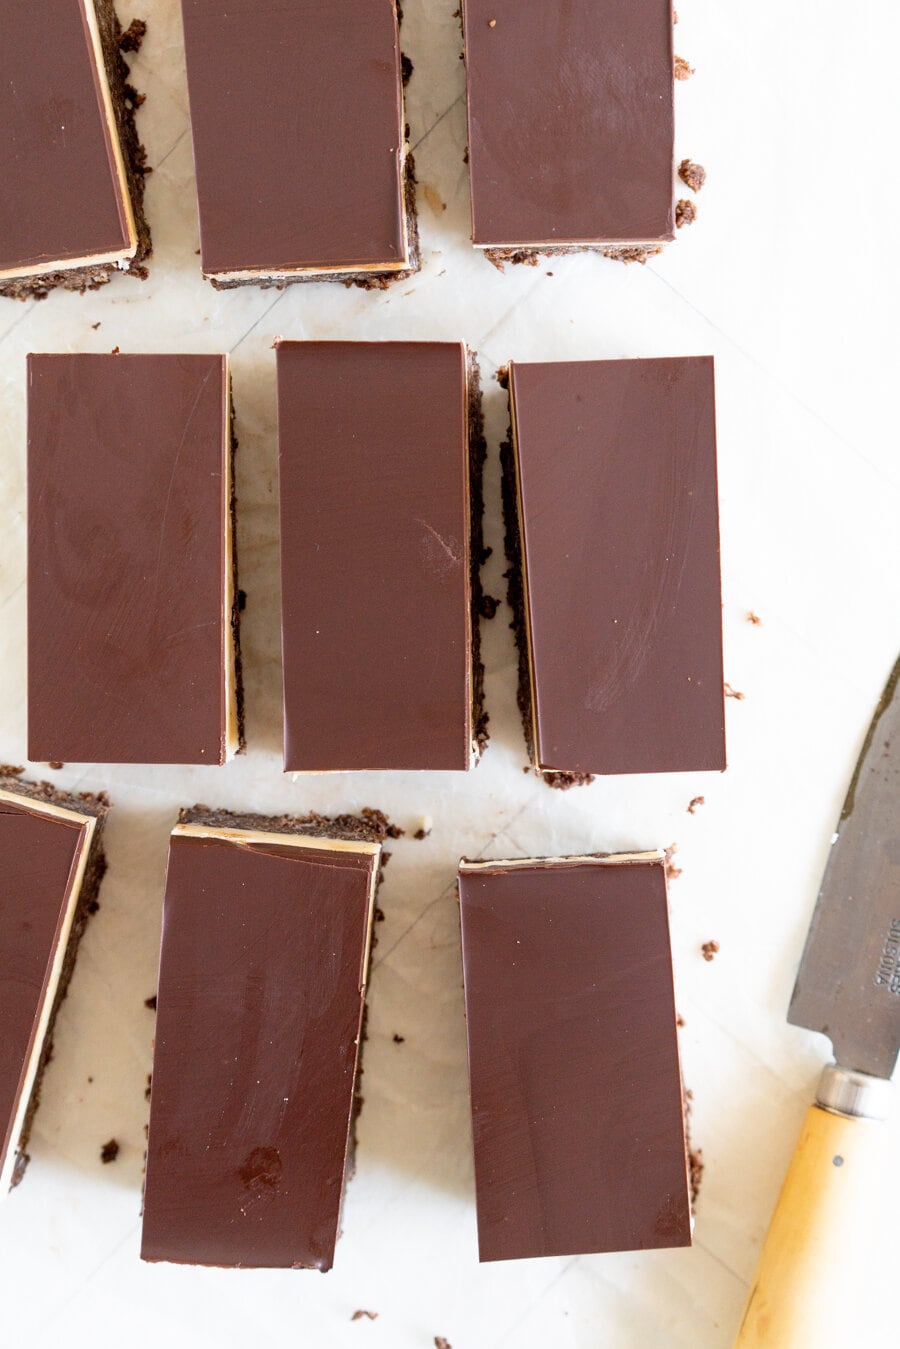 No-Bake Nanaimo Bars - a graham cracker and coconut base is topped with a smooth custard American buttercream and finished off with a super smooth layer of dark chocolate. These are a classic bar, and this no-bake version is so so easy to make!